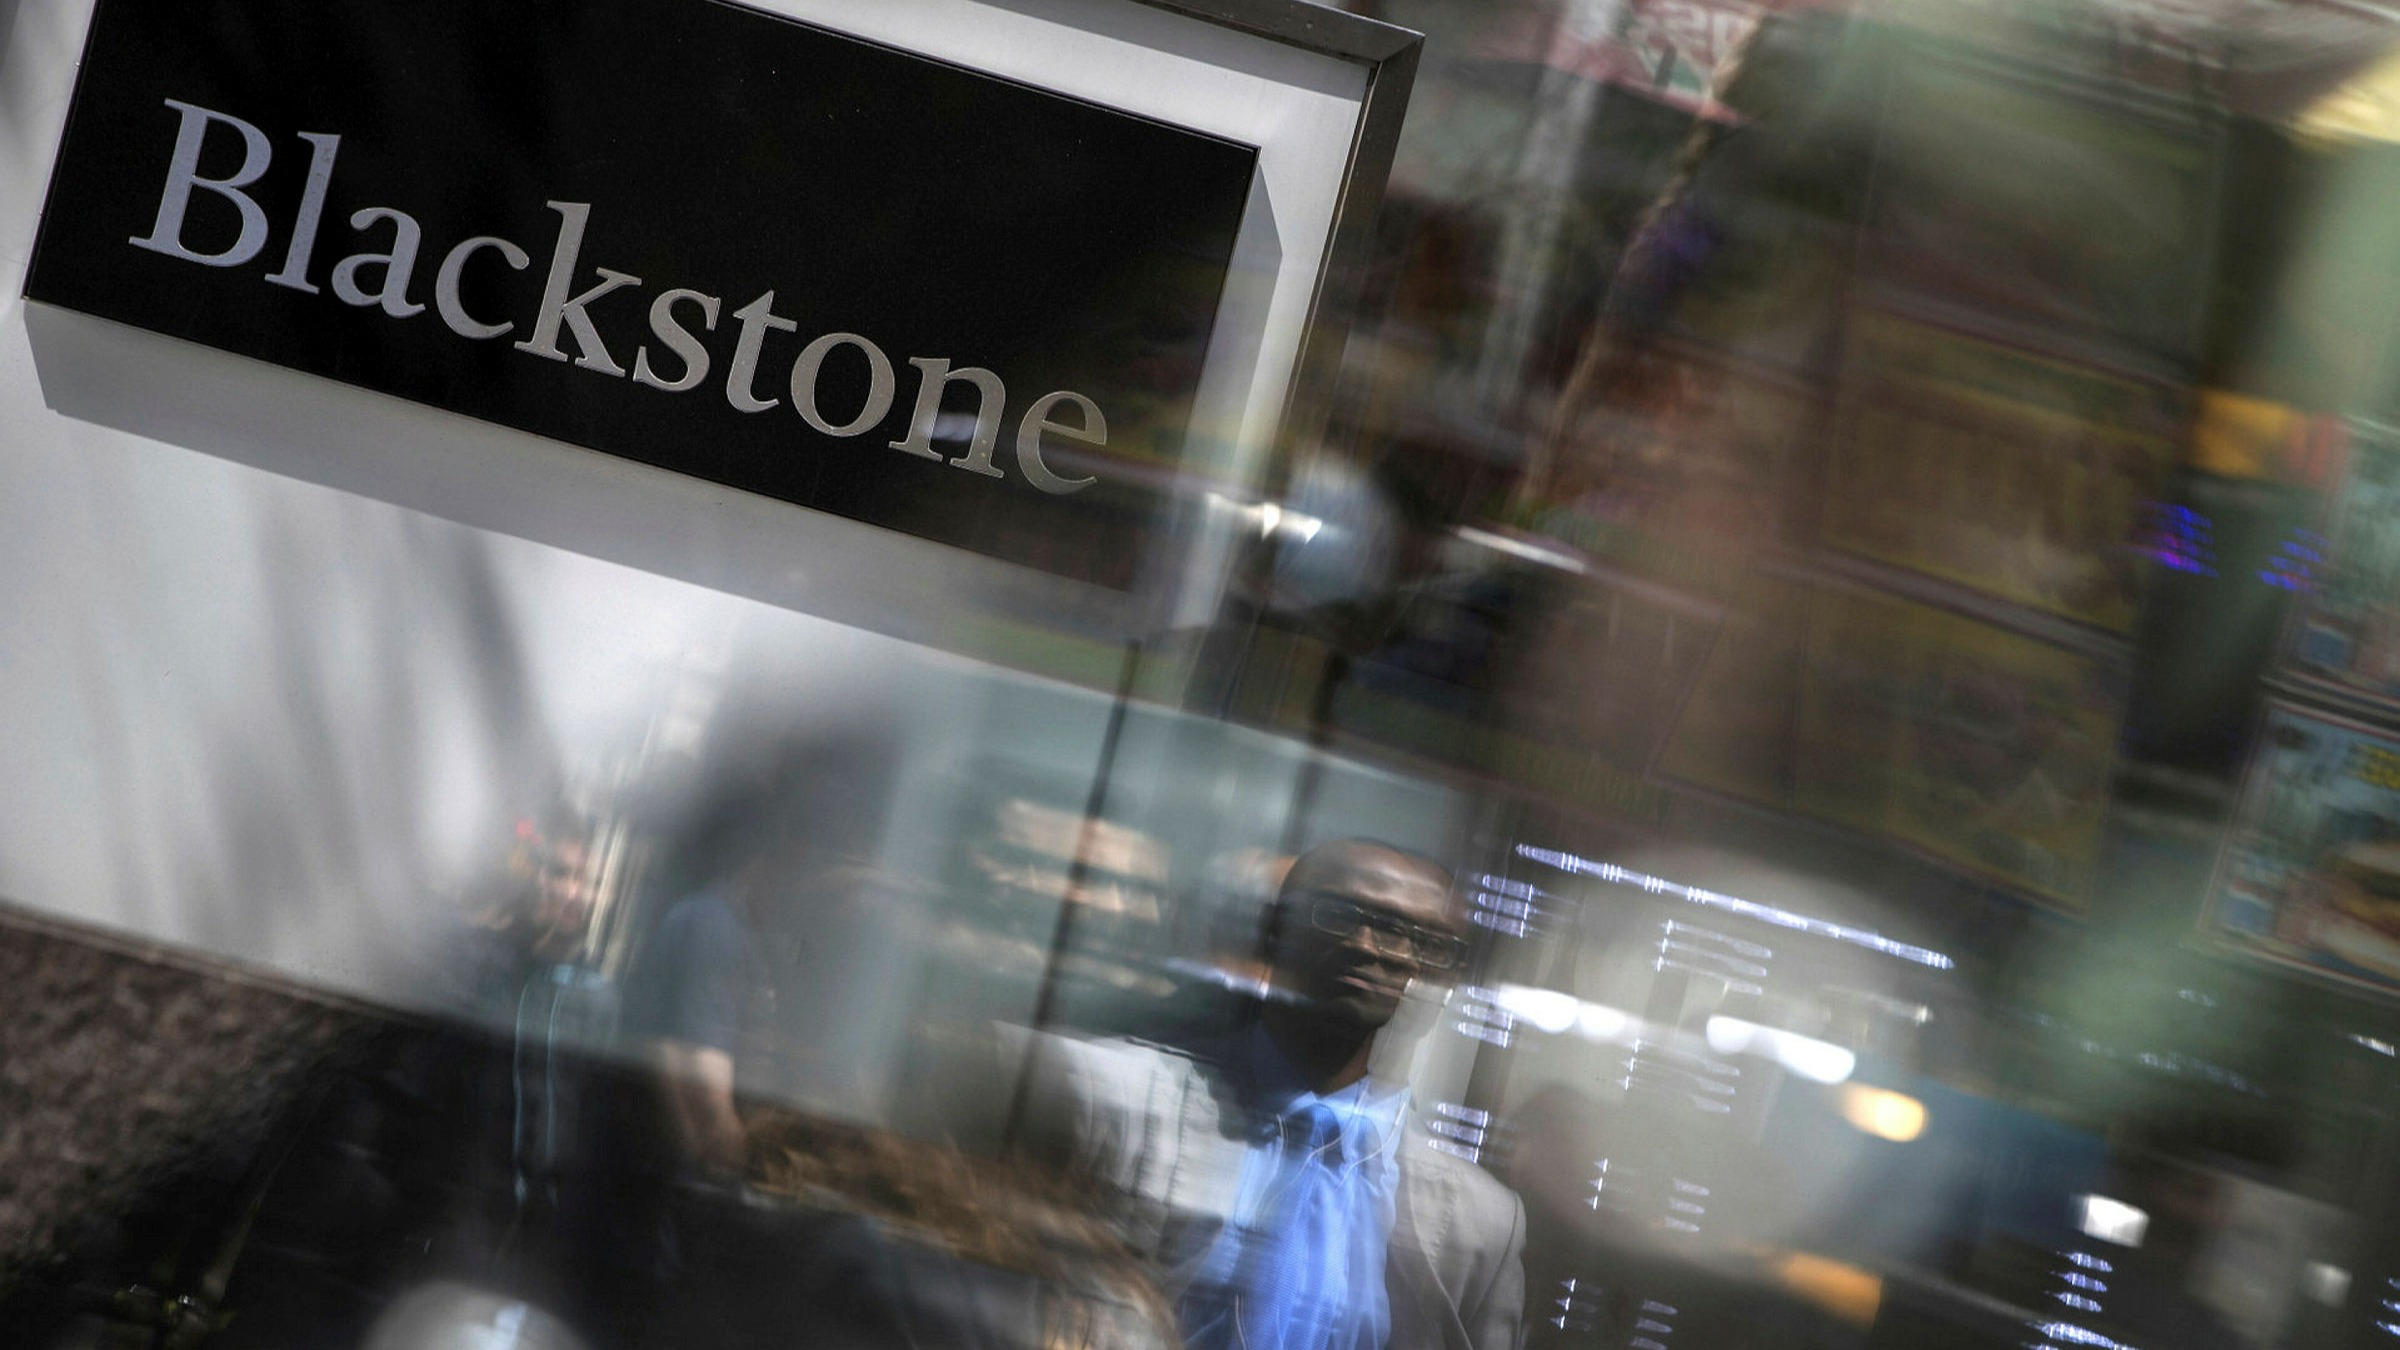 ft.com - Oliver Ralph and Kaye Wiggins - Blackstone sells Rothesay stake for £2.1bn